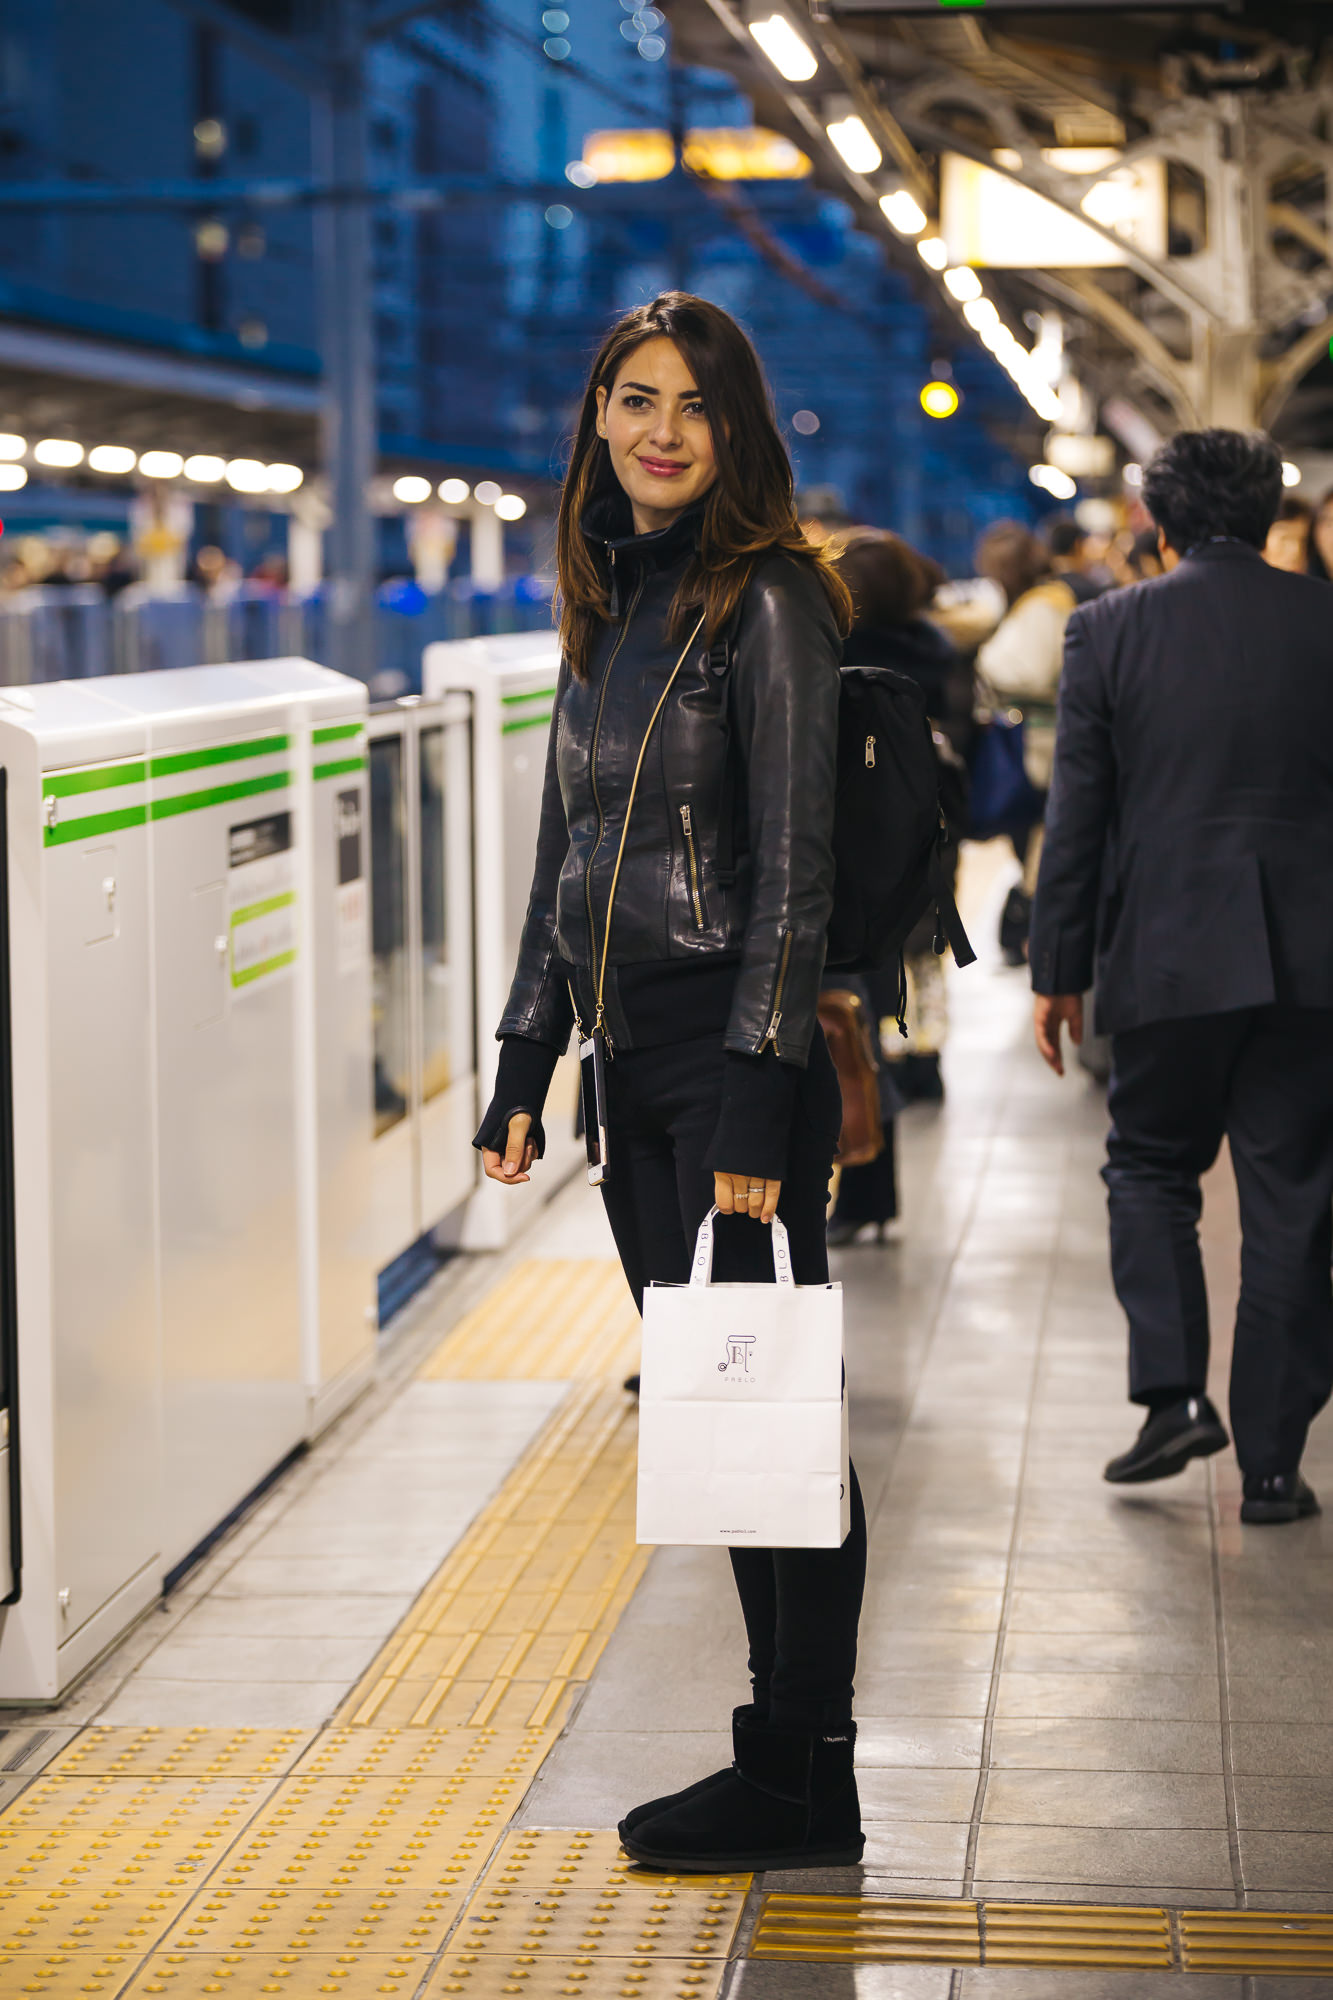 Waiting for the train in Tokyo.